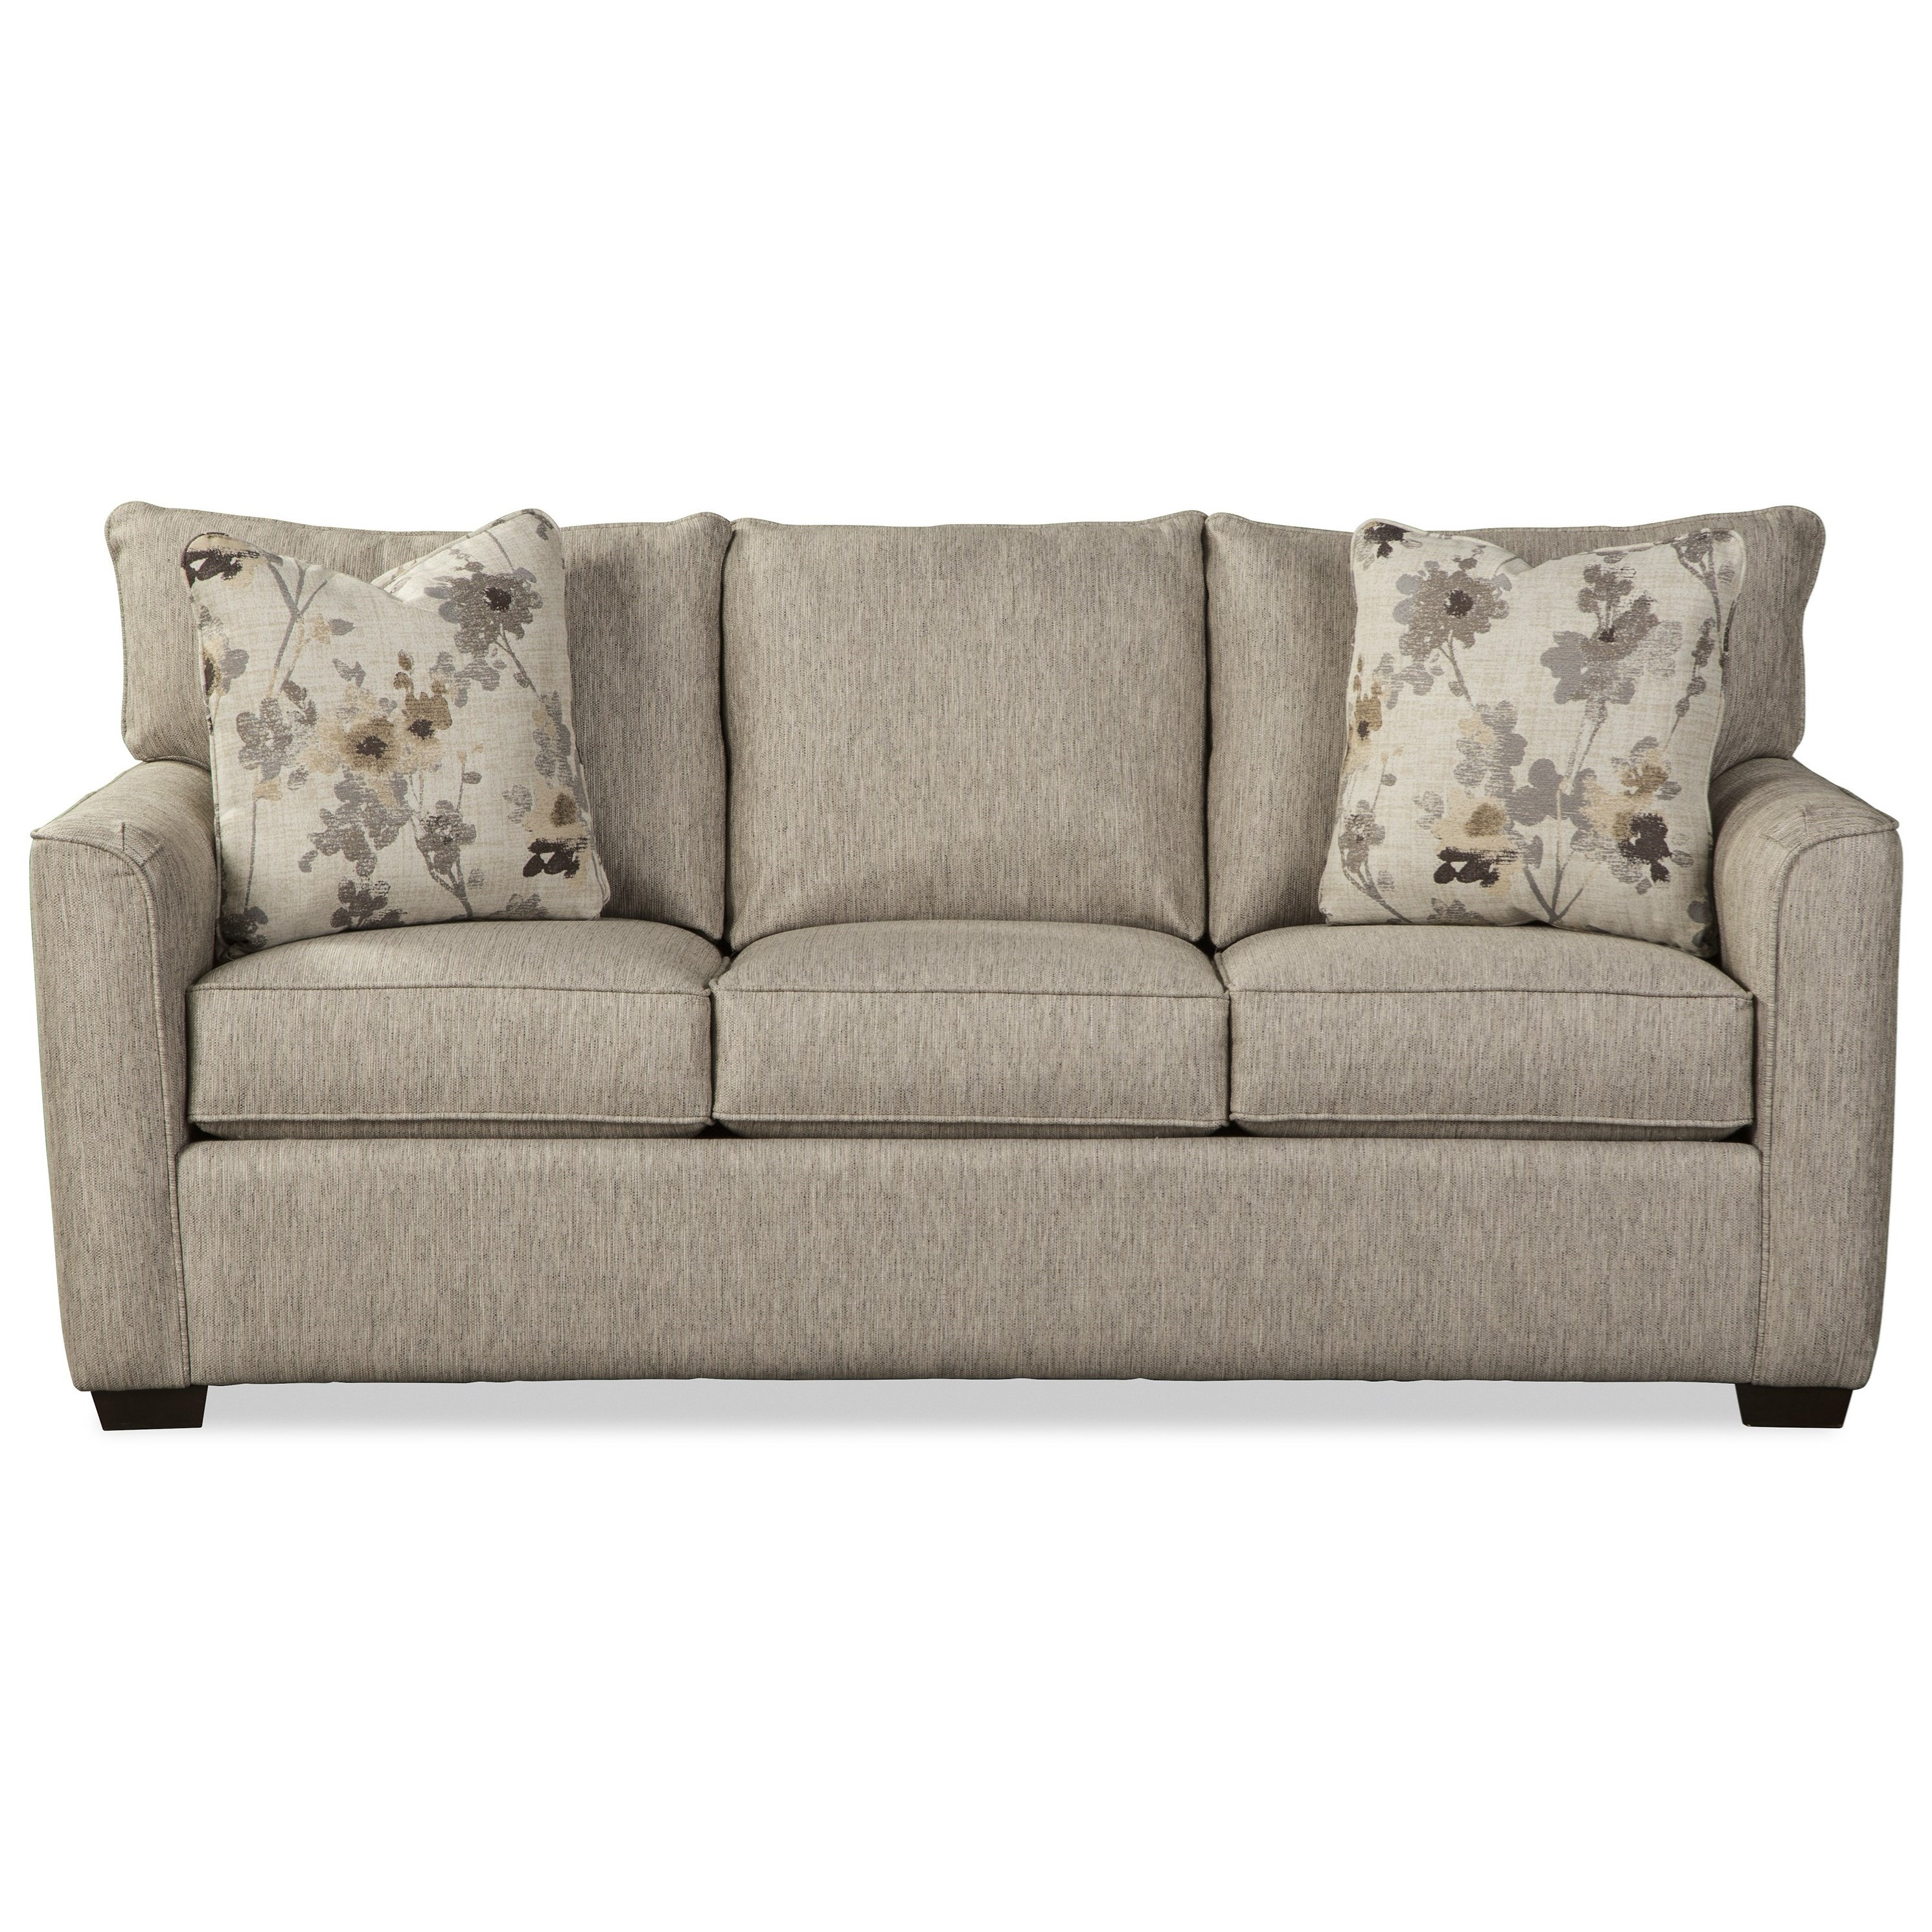 Astounding Craftmaster 790950 790950 98 Casual Queen Sleeper Sofa With Forskolin Free Trial Chair Design Images Forskolin Free Trialorg